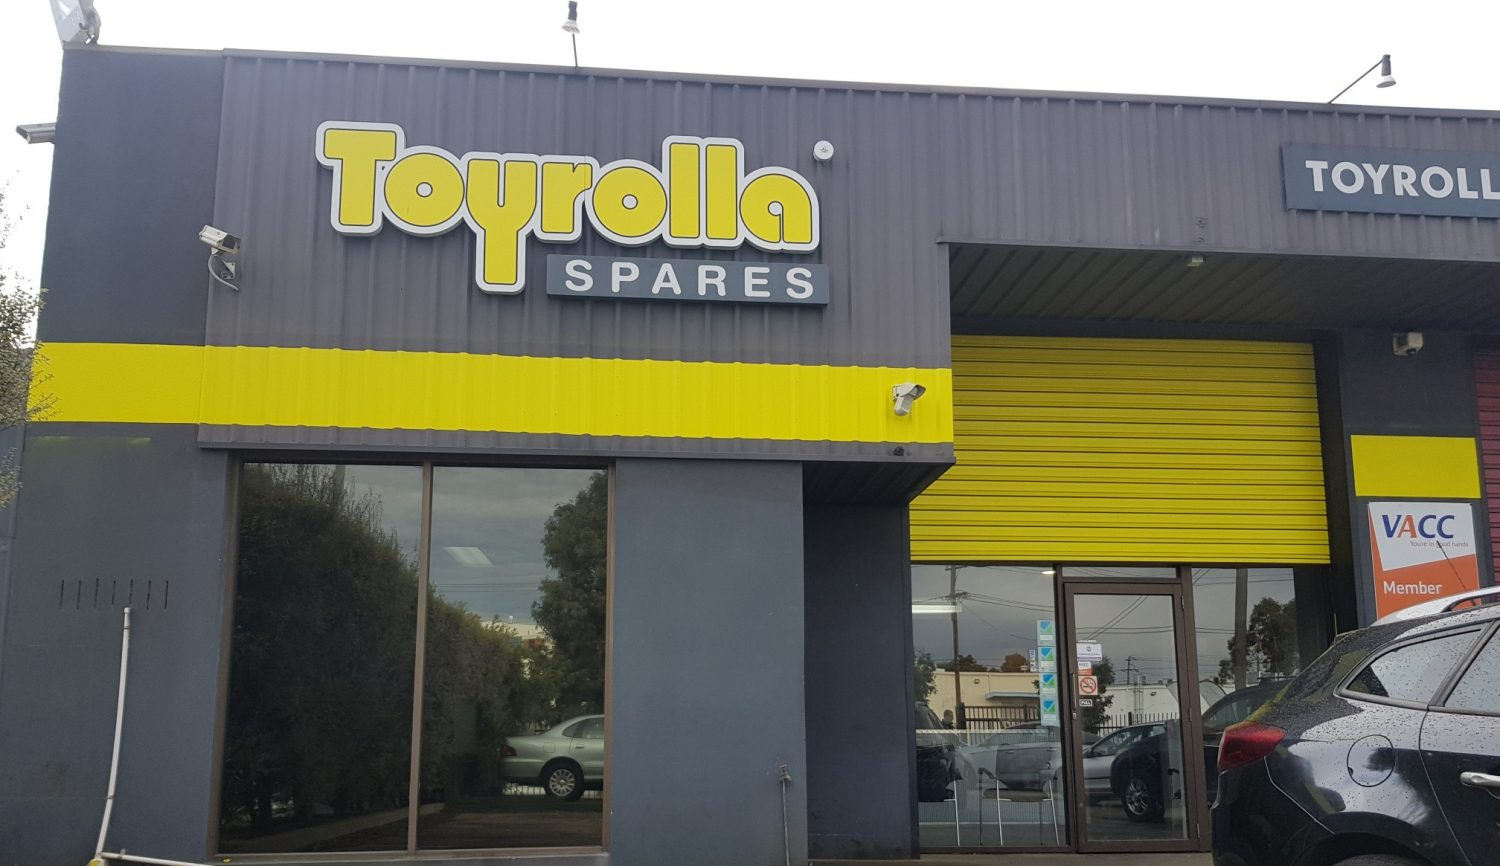 Toyrolla Spares Toyota Wreckers Supplying Quality Second-hand Lexus & Toyota Parts Since 1988